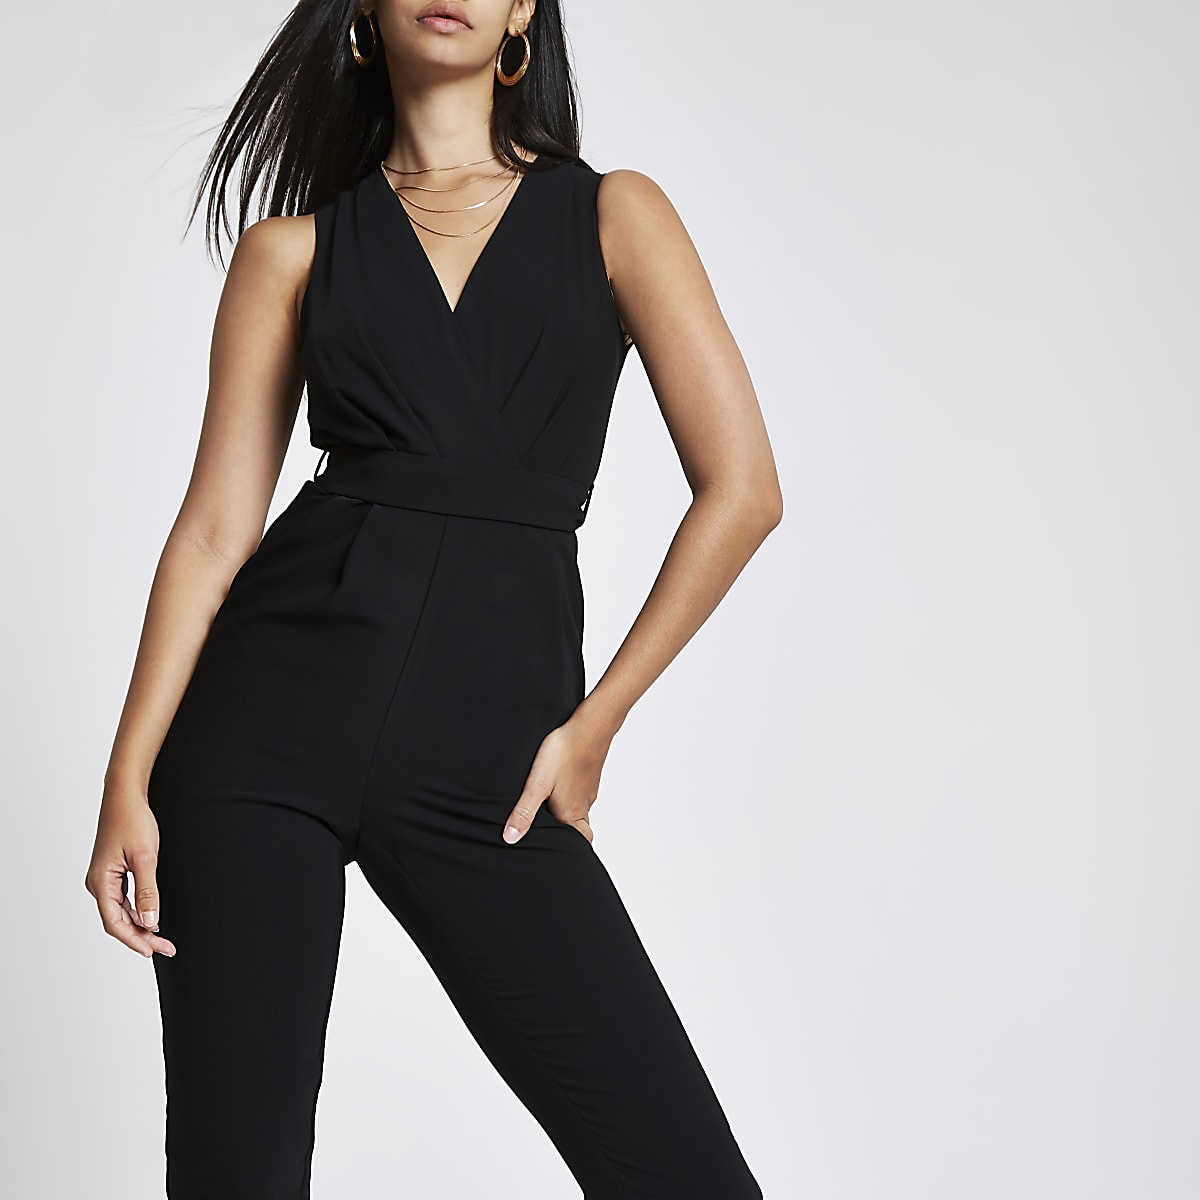 3c0d4c8e7e4 Black wrap front tie waist jumpsuit - Jumpsuits - Playsuits   Jumpsuits -  women